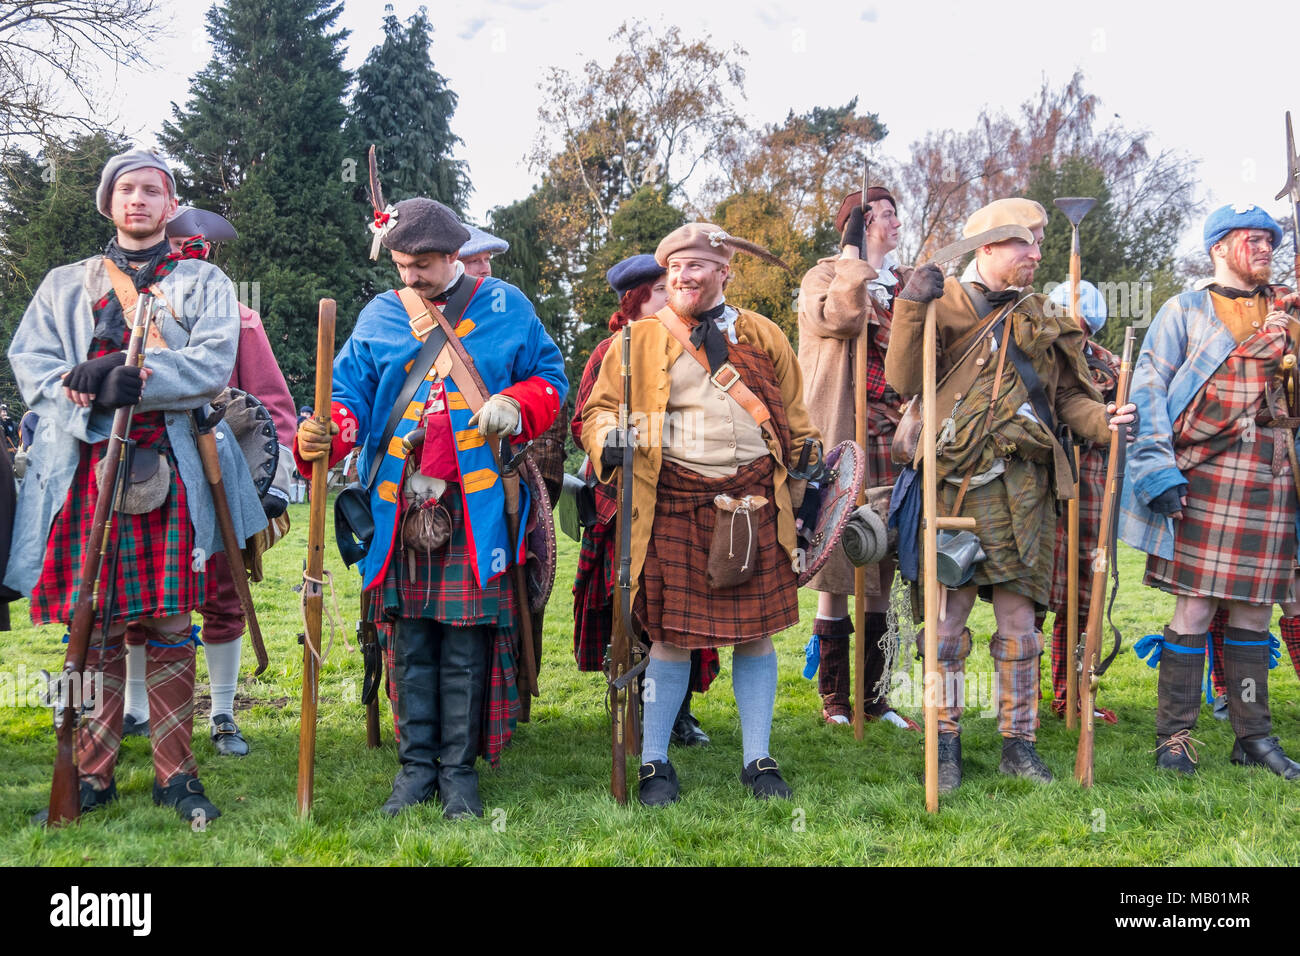 b6008a3addea3 Scottish soldiers in a reenactment of the Jacobite rising of 1745 in  support of Bonnie Prince